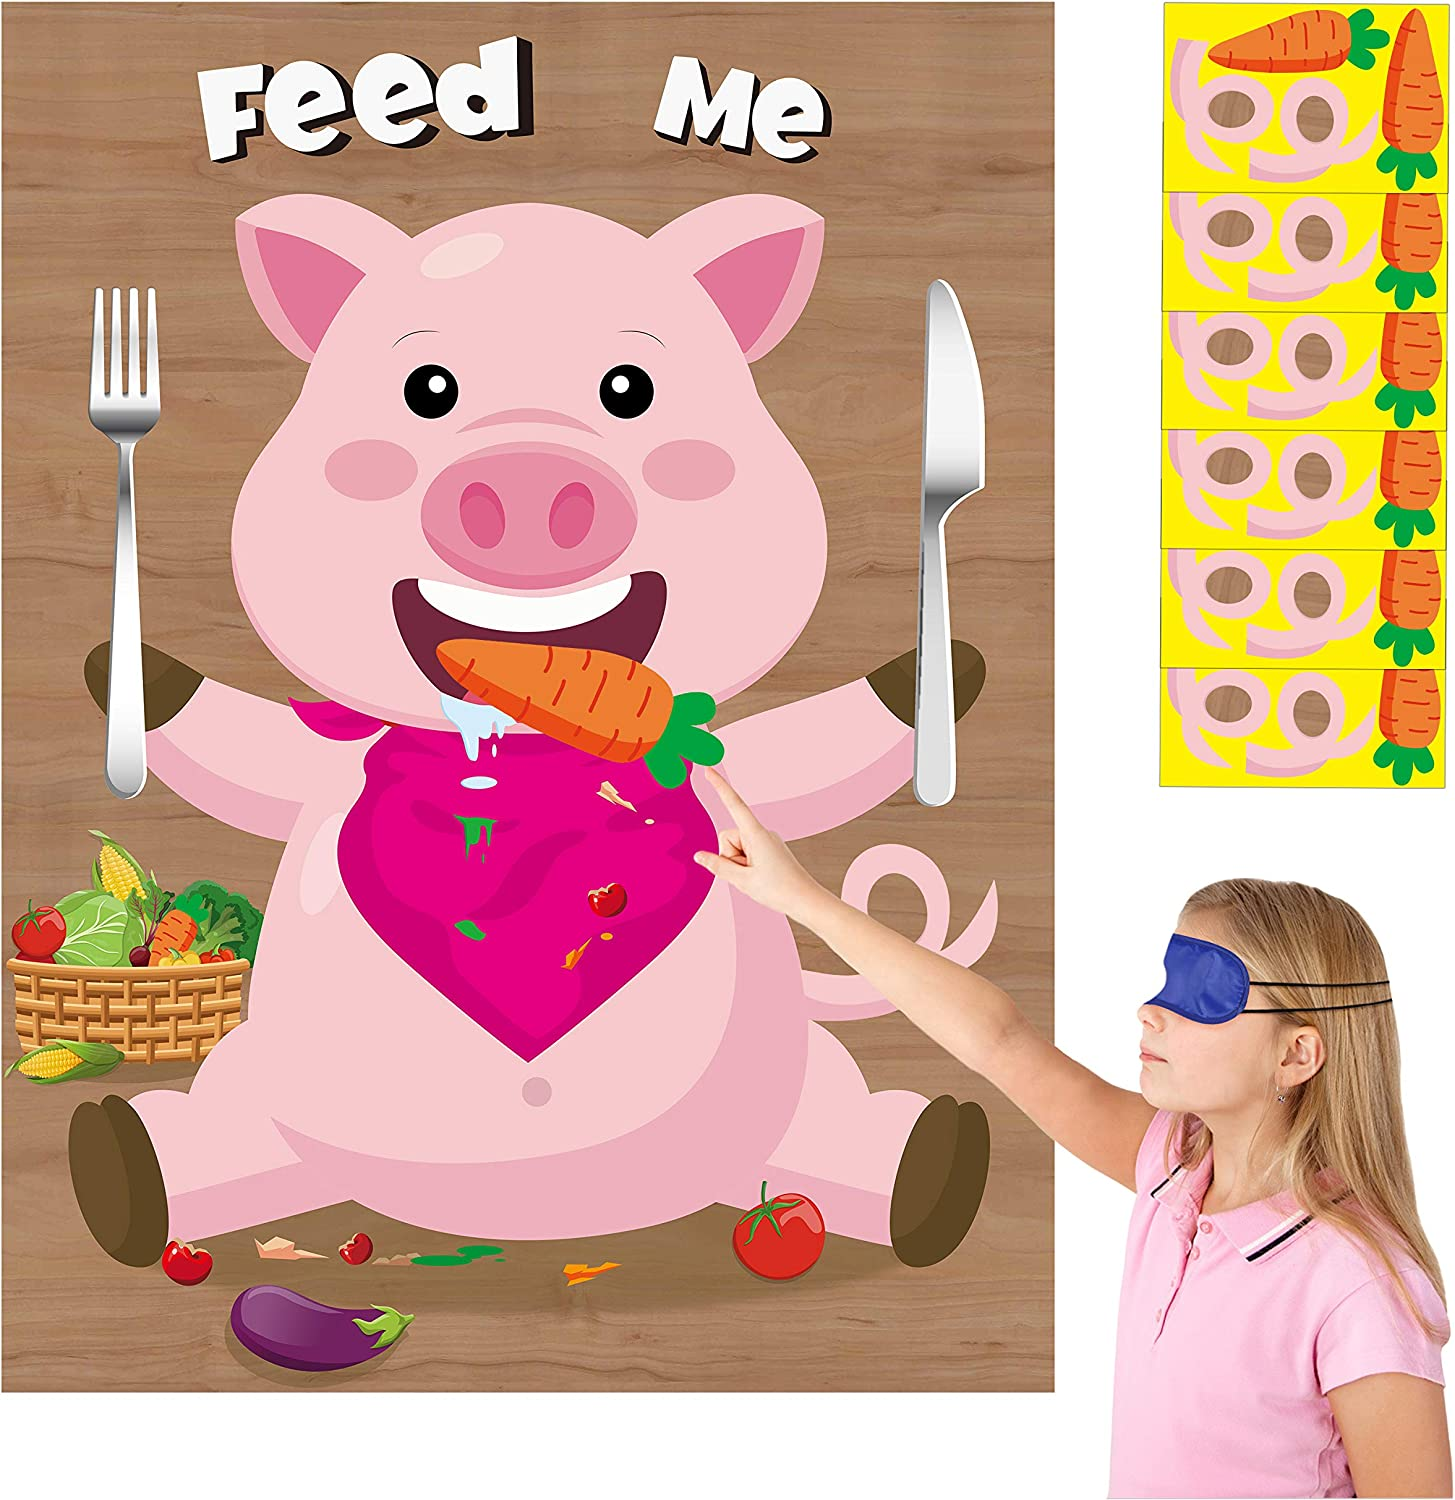 Amazon Com Mallmall6 Cartoon Pig Stickers Party Games For Kids Pin The Pig Tail On The Piggy Feed The Pig With Carrot Birthday Party Favors Baby Shower Party Supplies Decorations Pin Game Poster